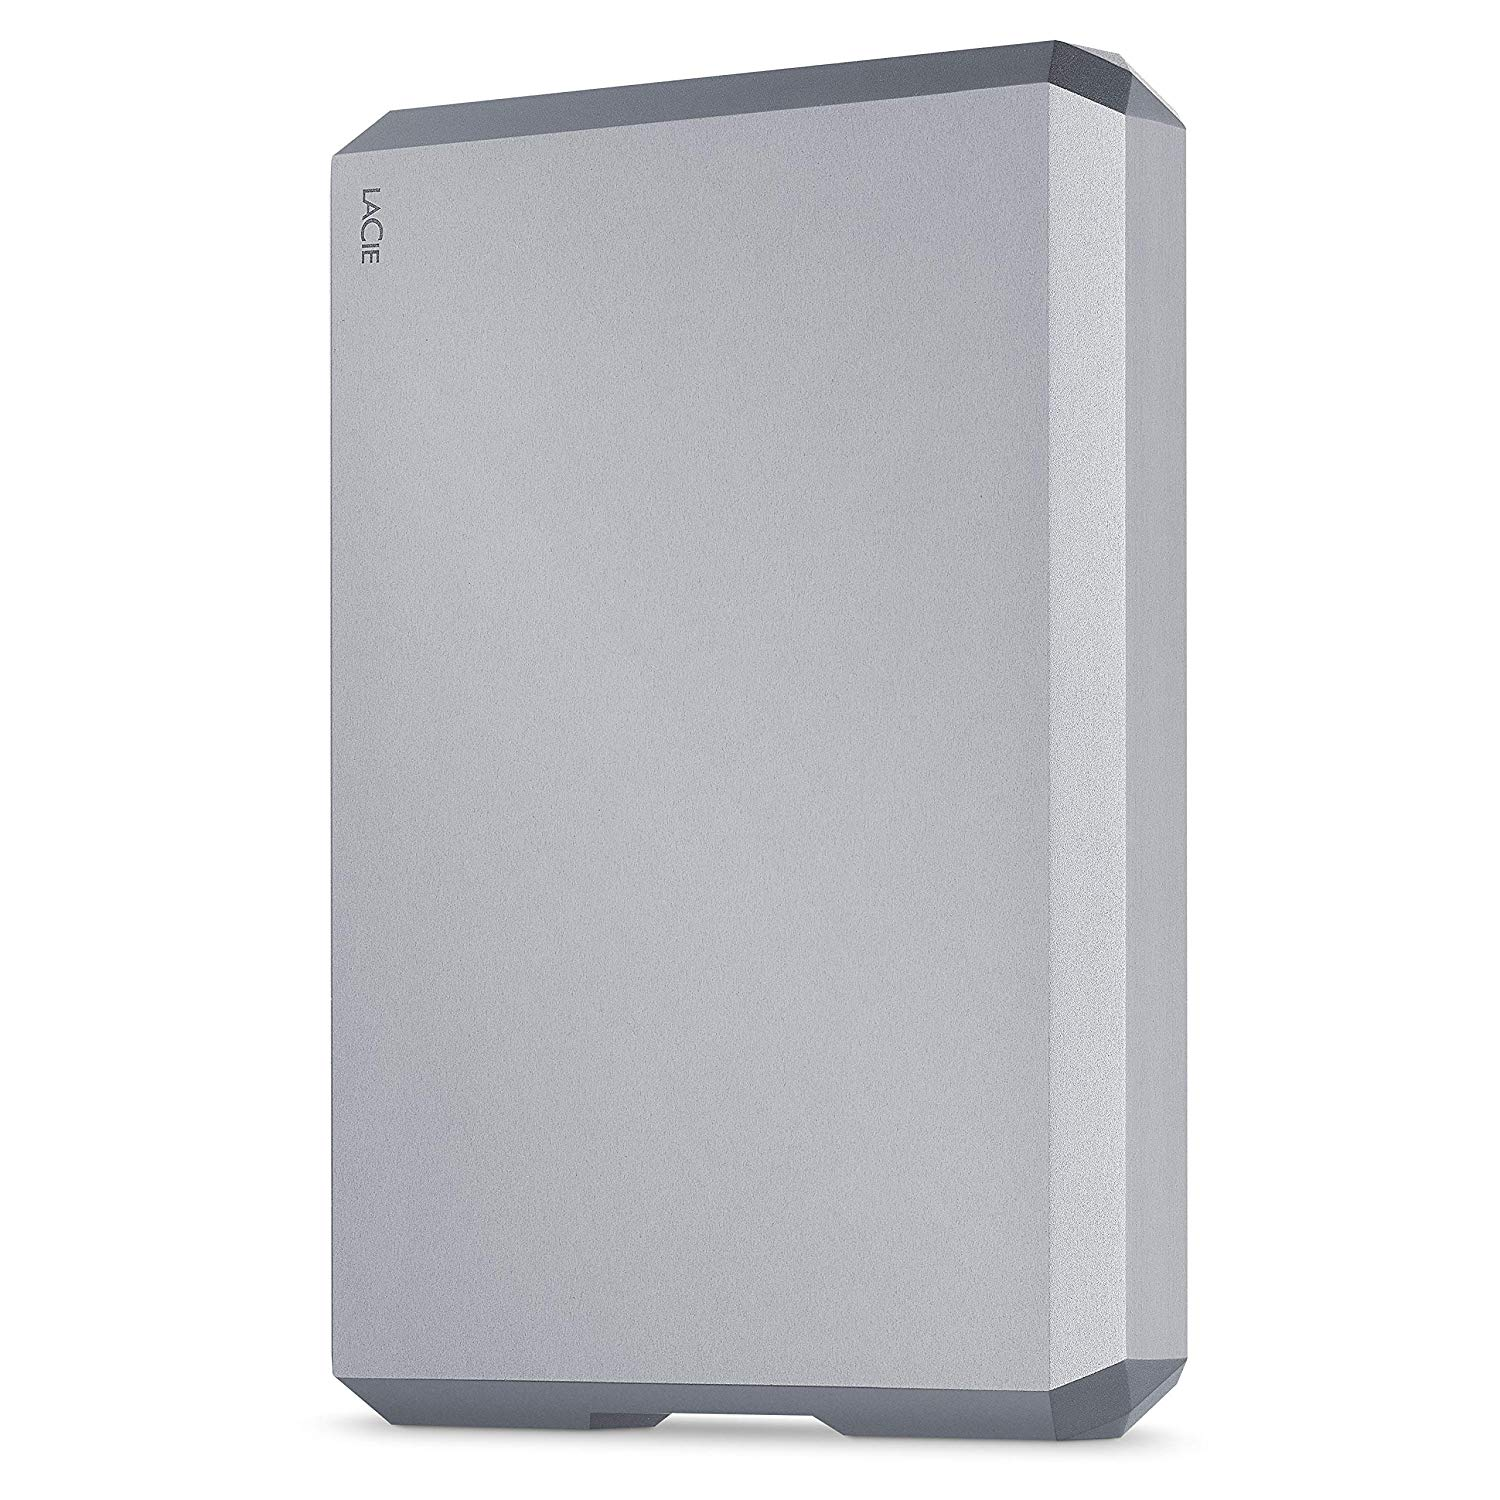 Hard Drives 5TB LaCie USBC Space Grey Mobile Ext HDD